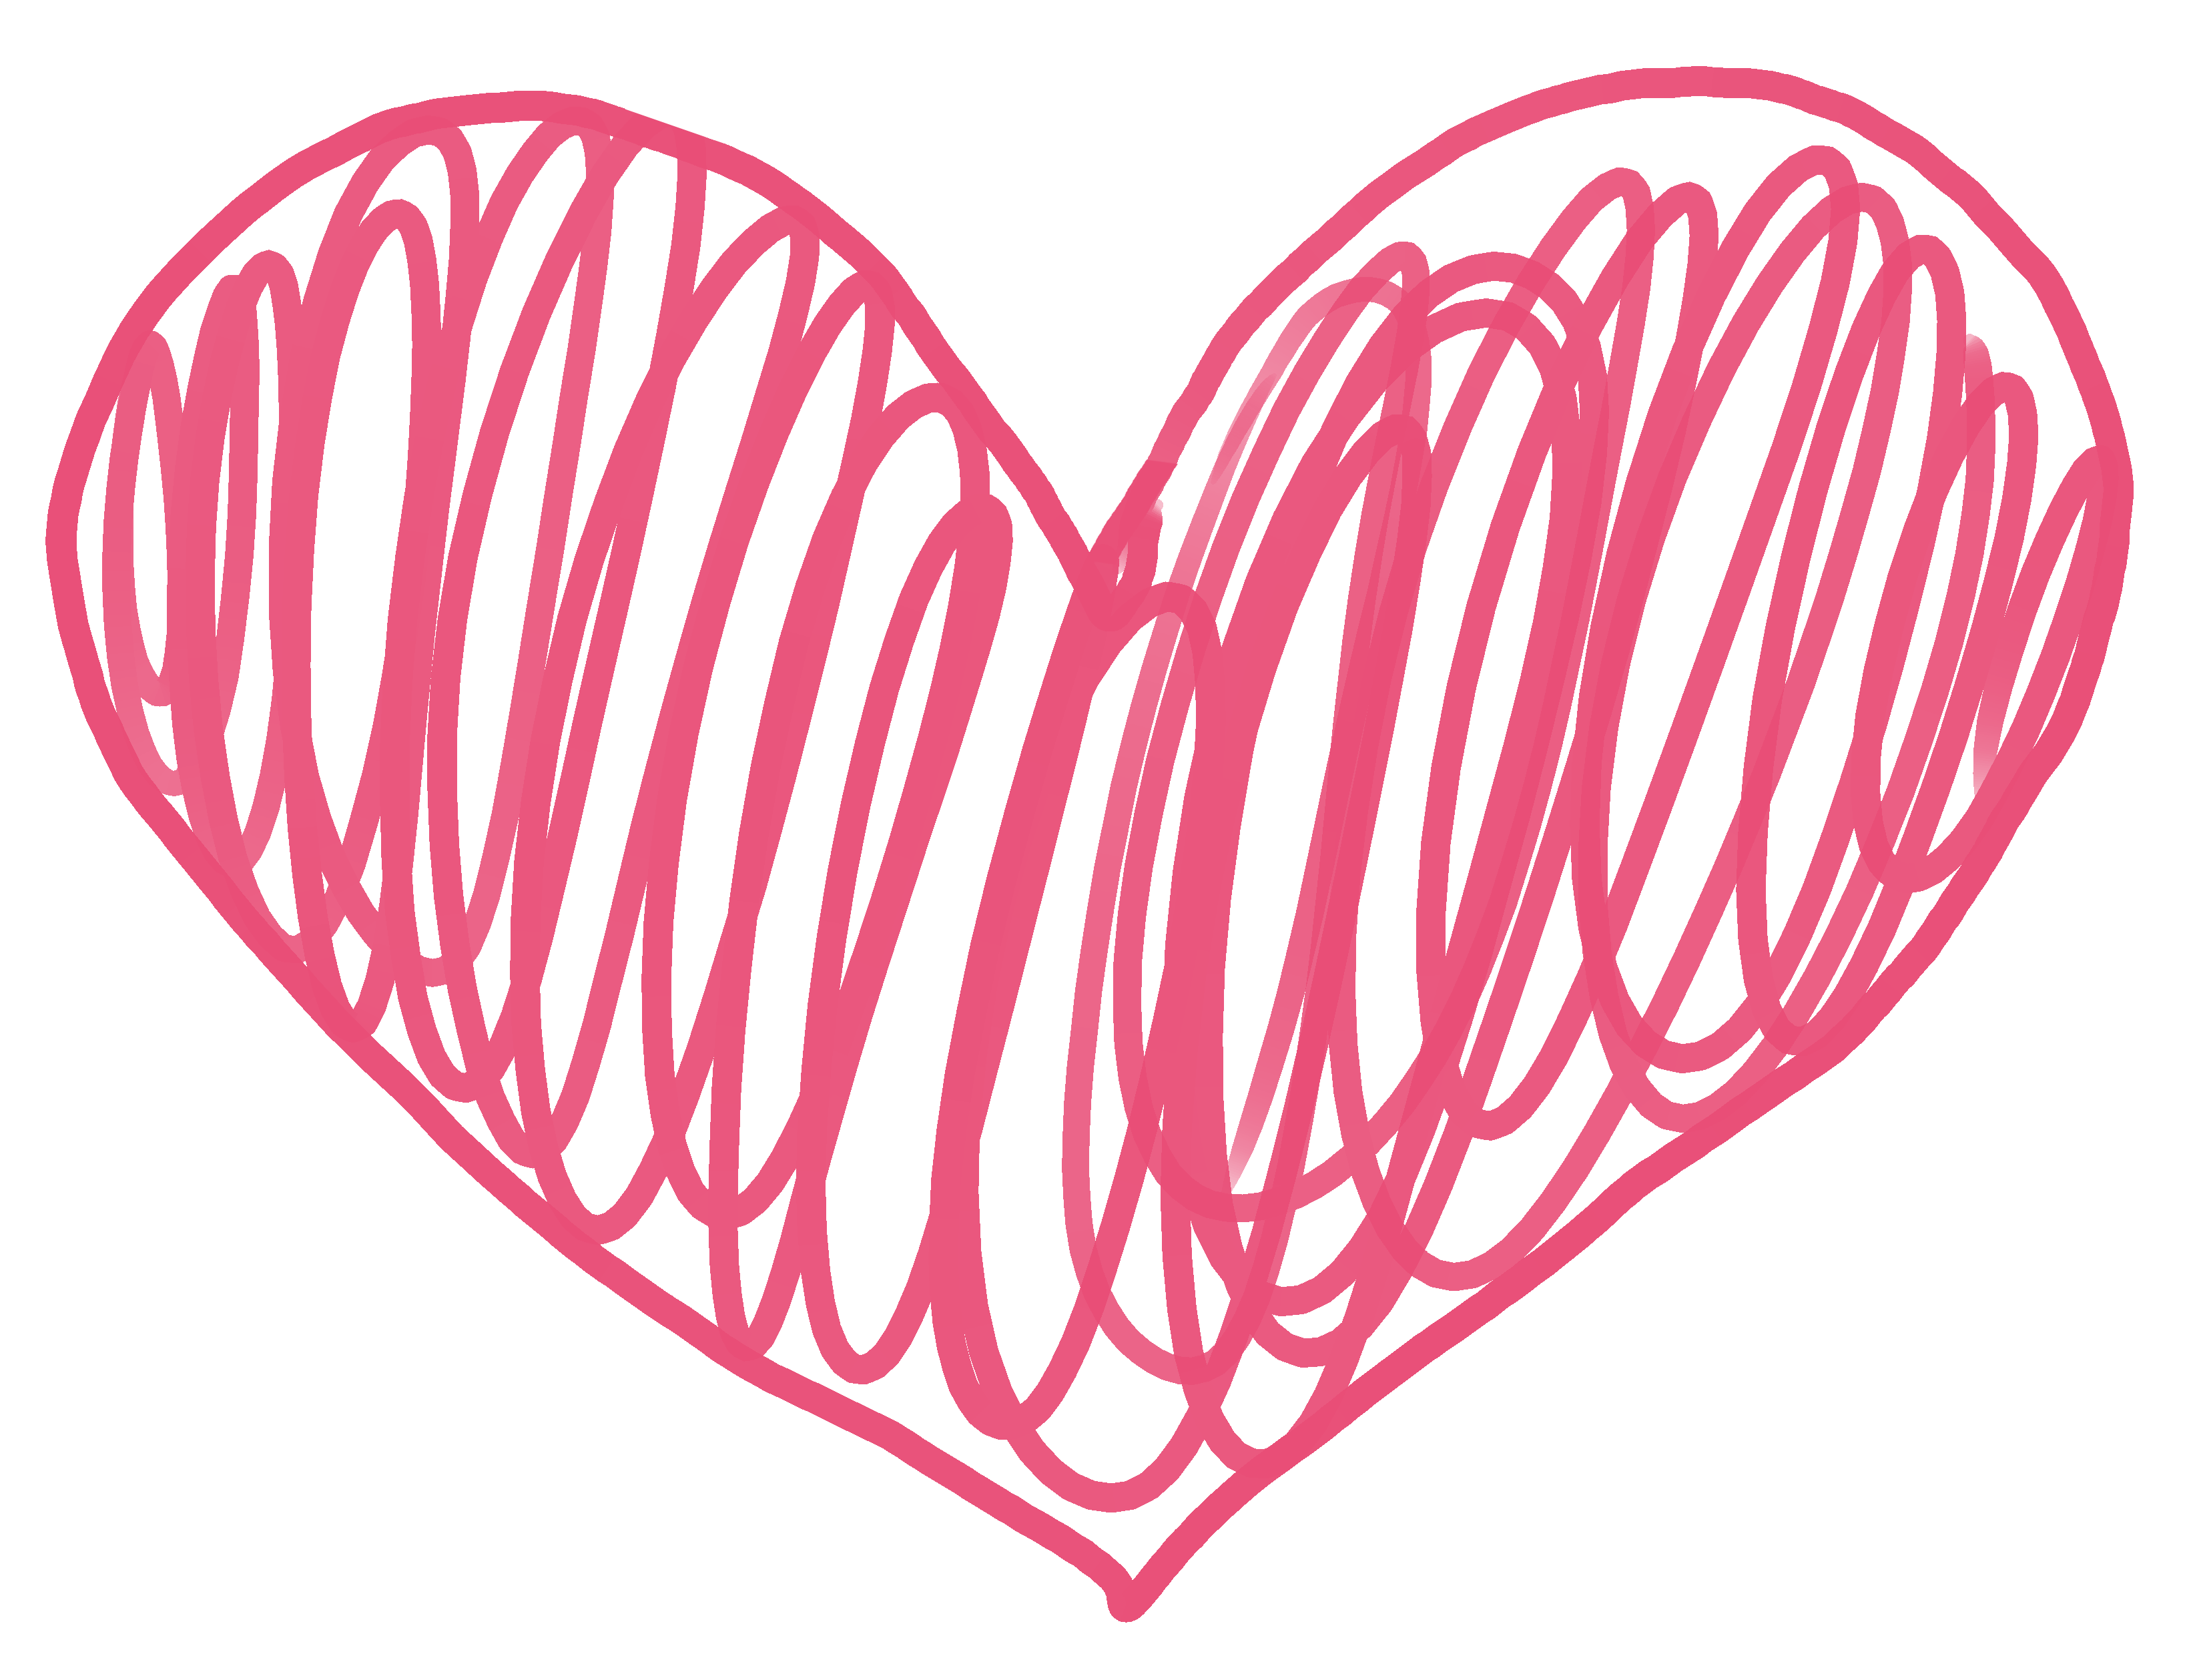 Free Sketch Heart Png, Download Free Clip Art, Free Clip Art.